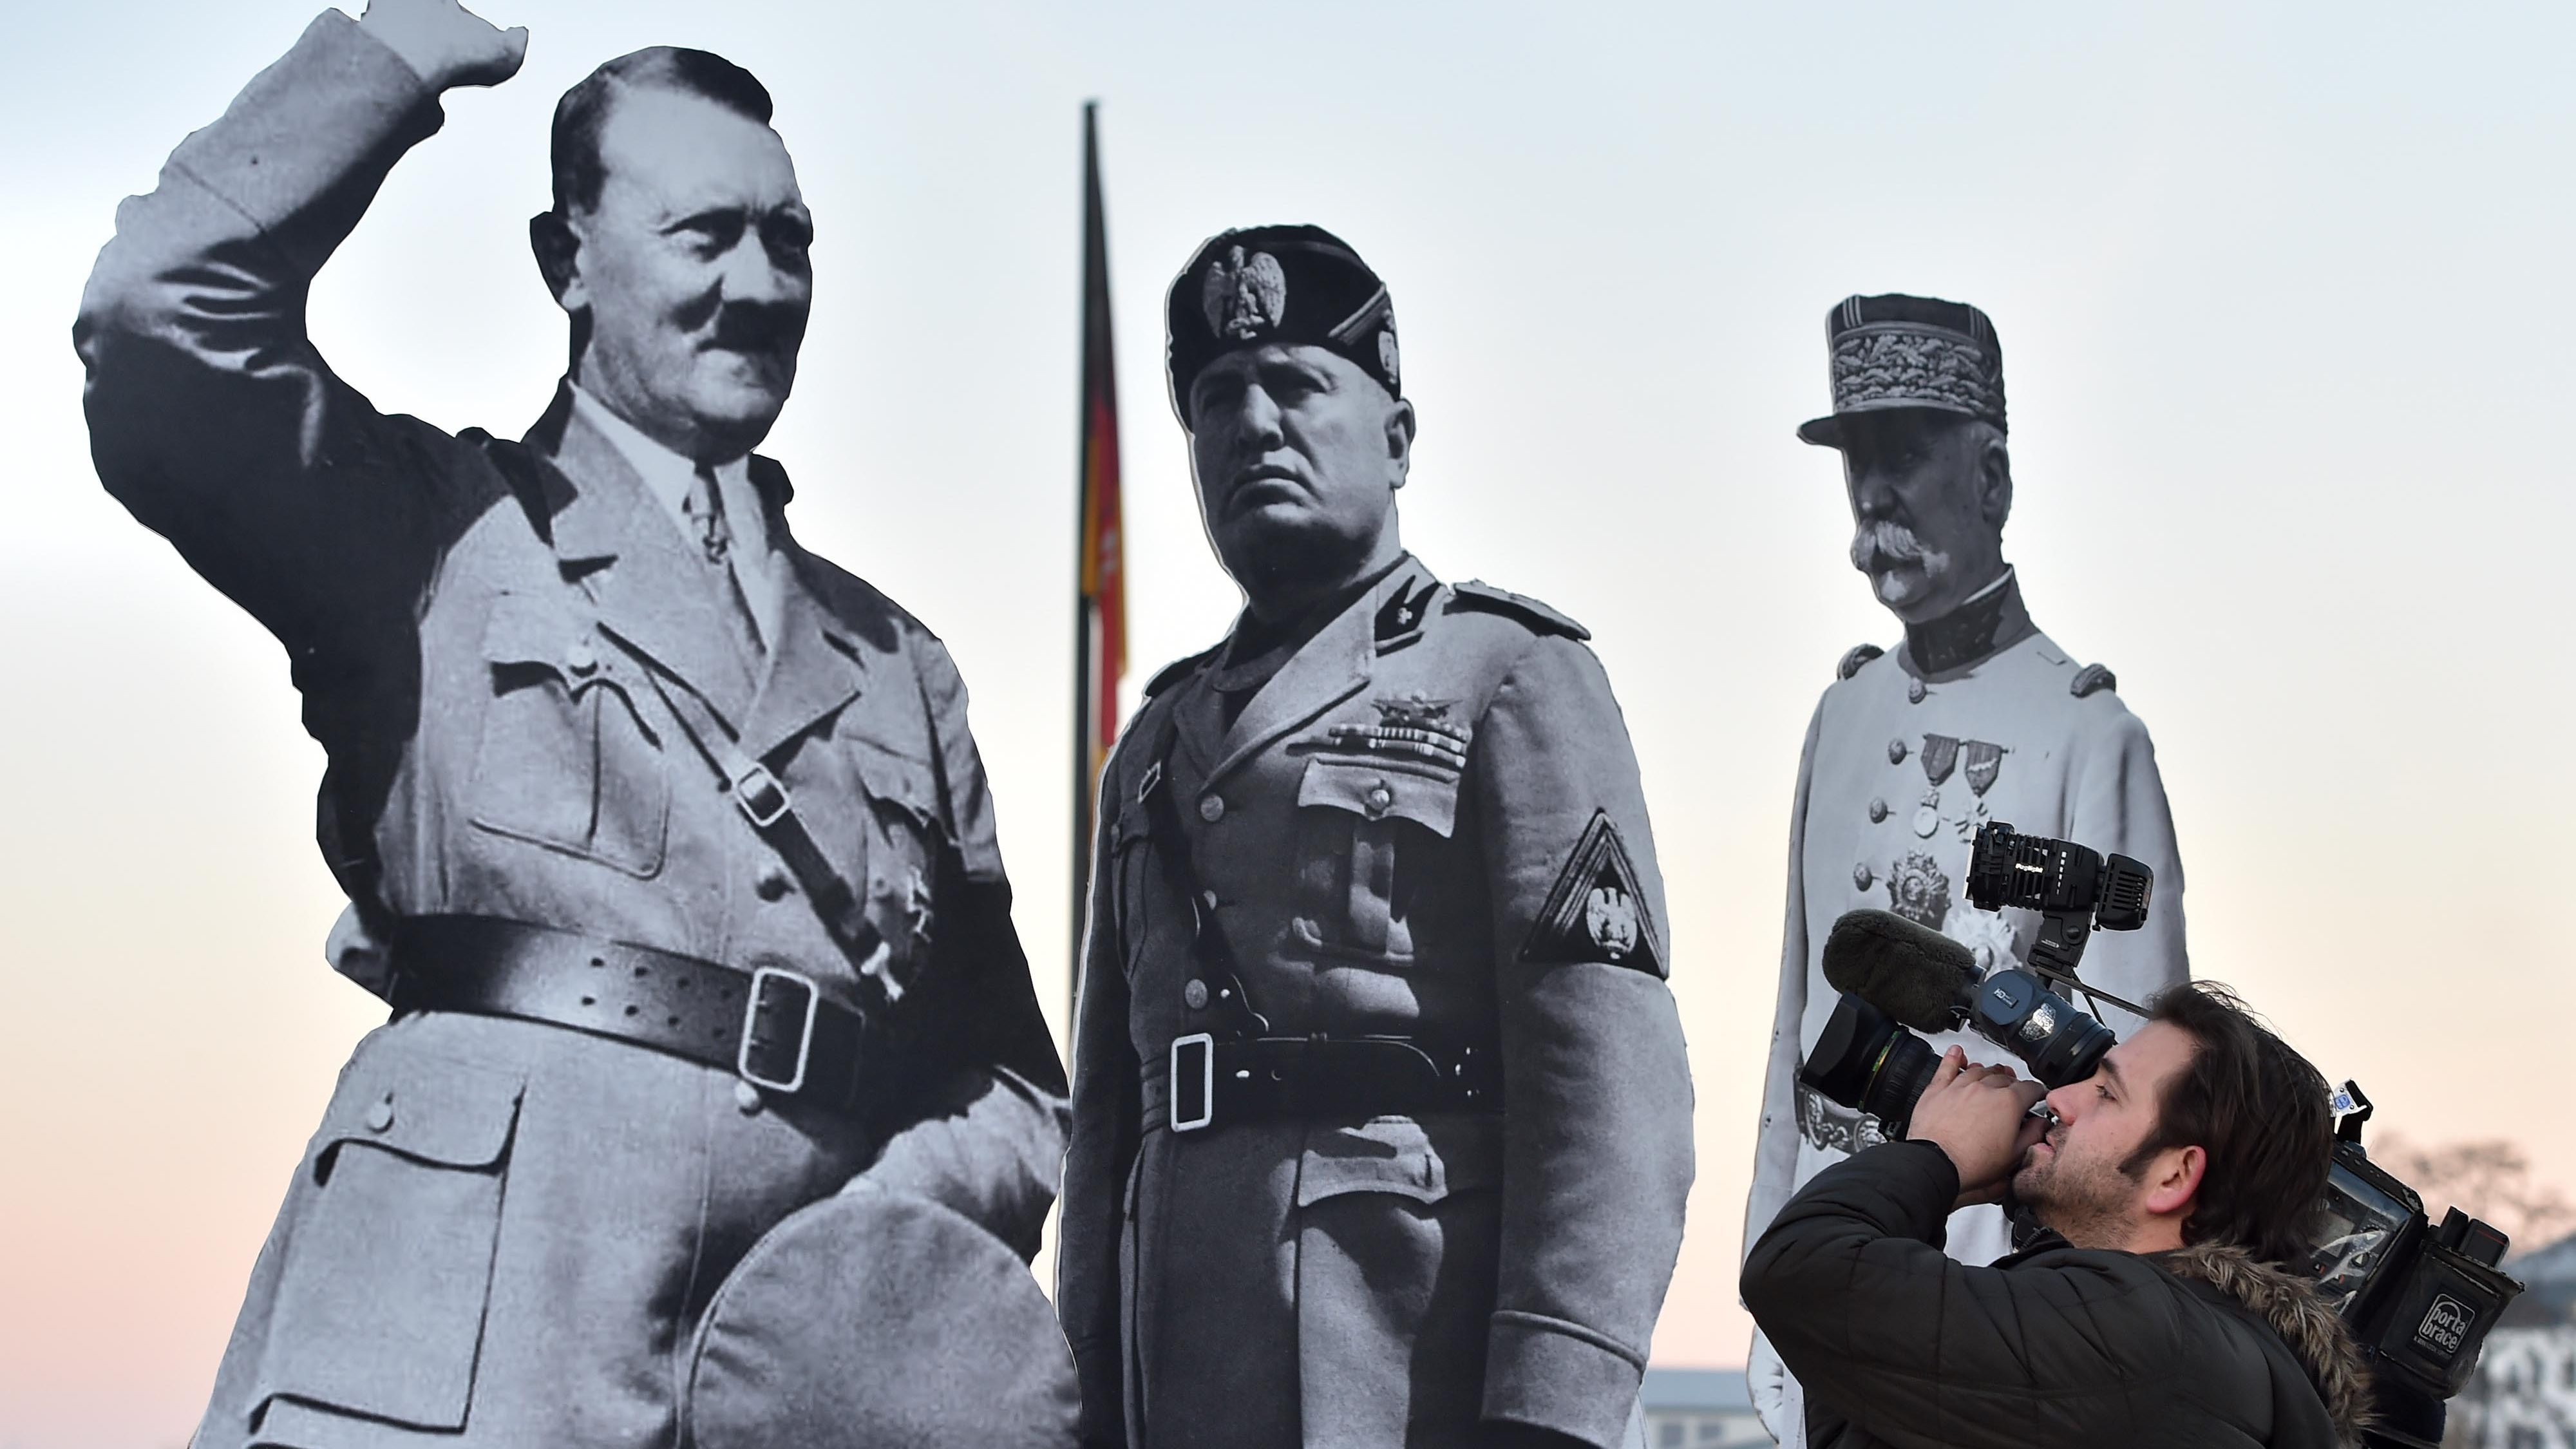 IMAGE DISTRIBUTED FOR AVAAZ -  Giant images of Hitler, Stalin, Mussolini, Franco and Petain in front of the historic Deutsches Eck statue in Koblenz, Germany, installed by the global civic movement Avaaz to warn of the return of fascism to Europe, as far right politicians gather in Koblenz on Saturday, 21 January 2017. (Torsten Silz/AP Images for AVAAZ)